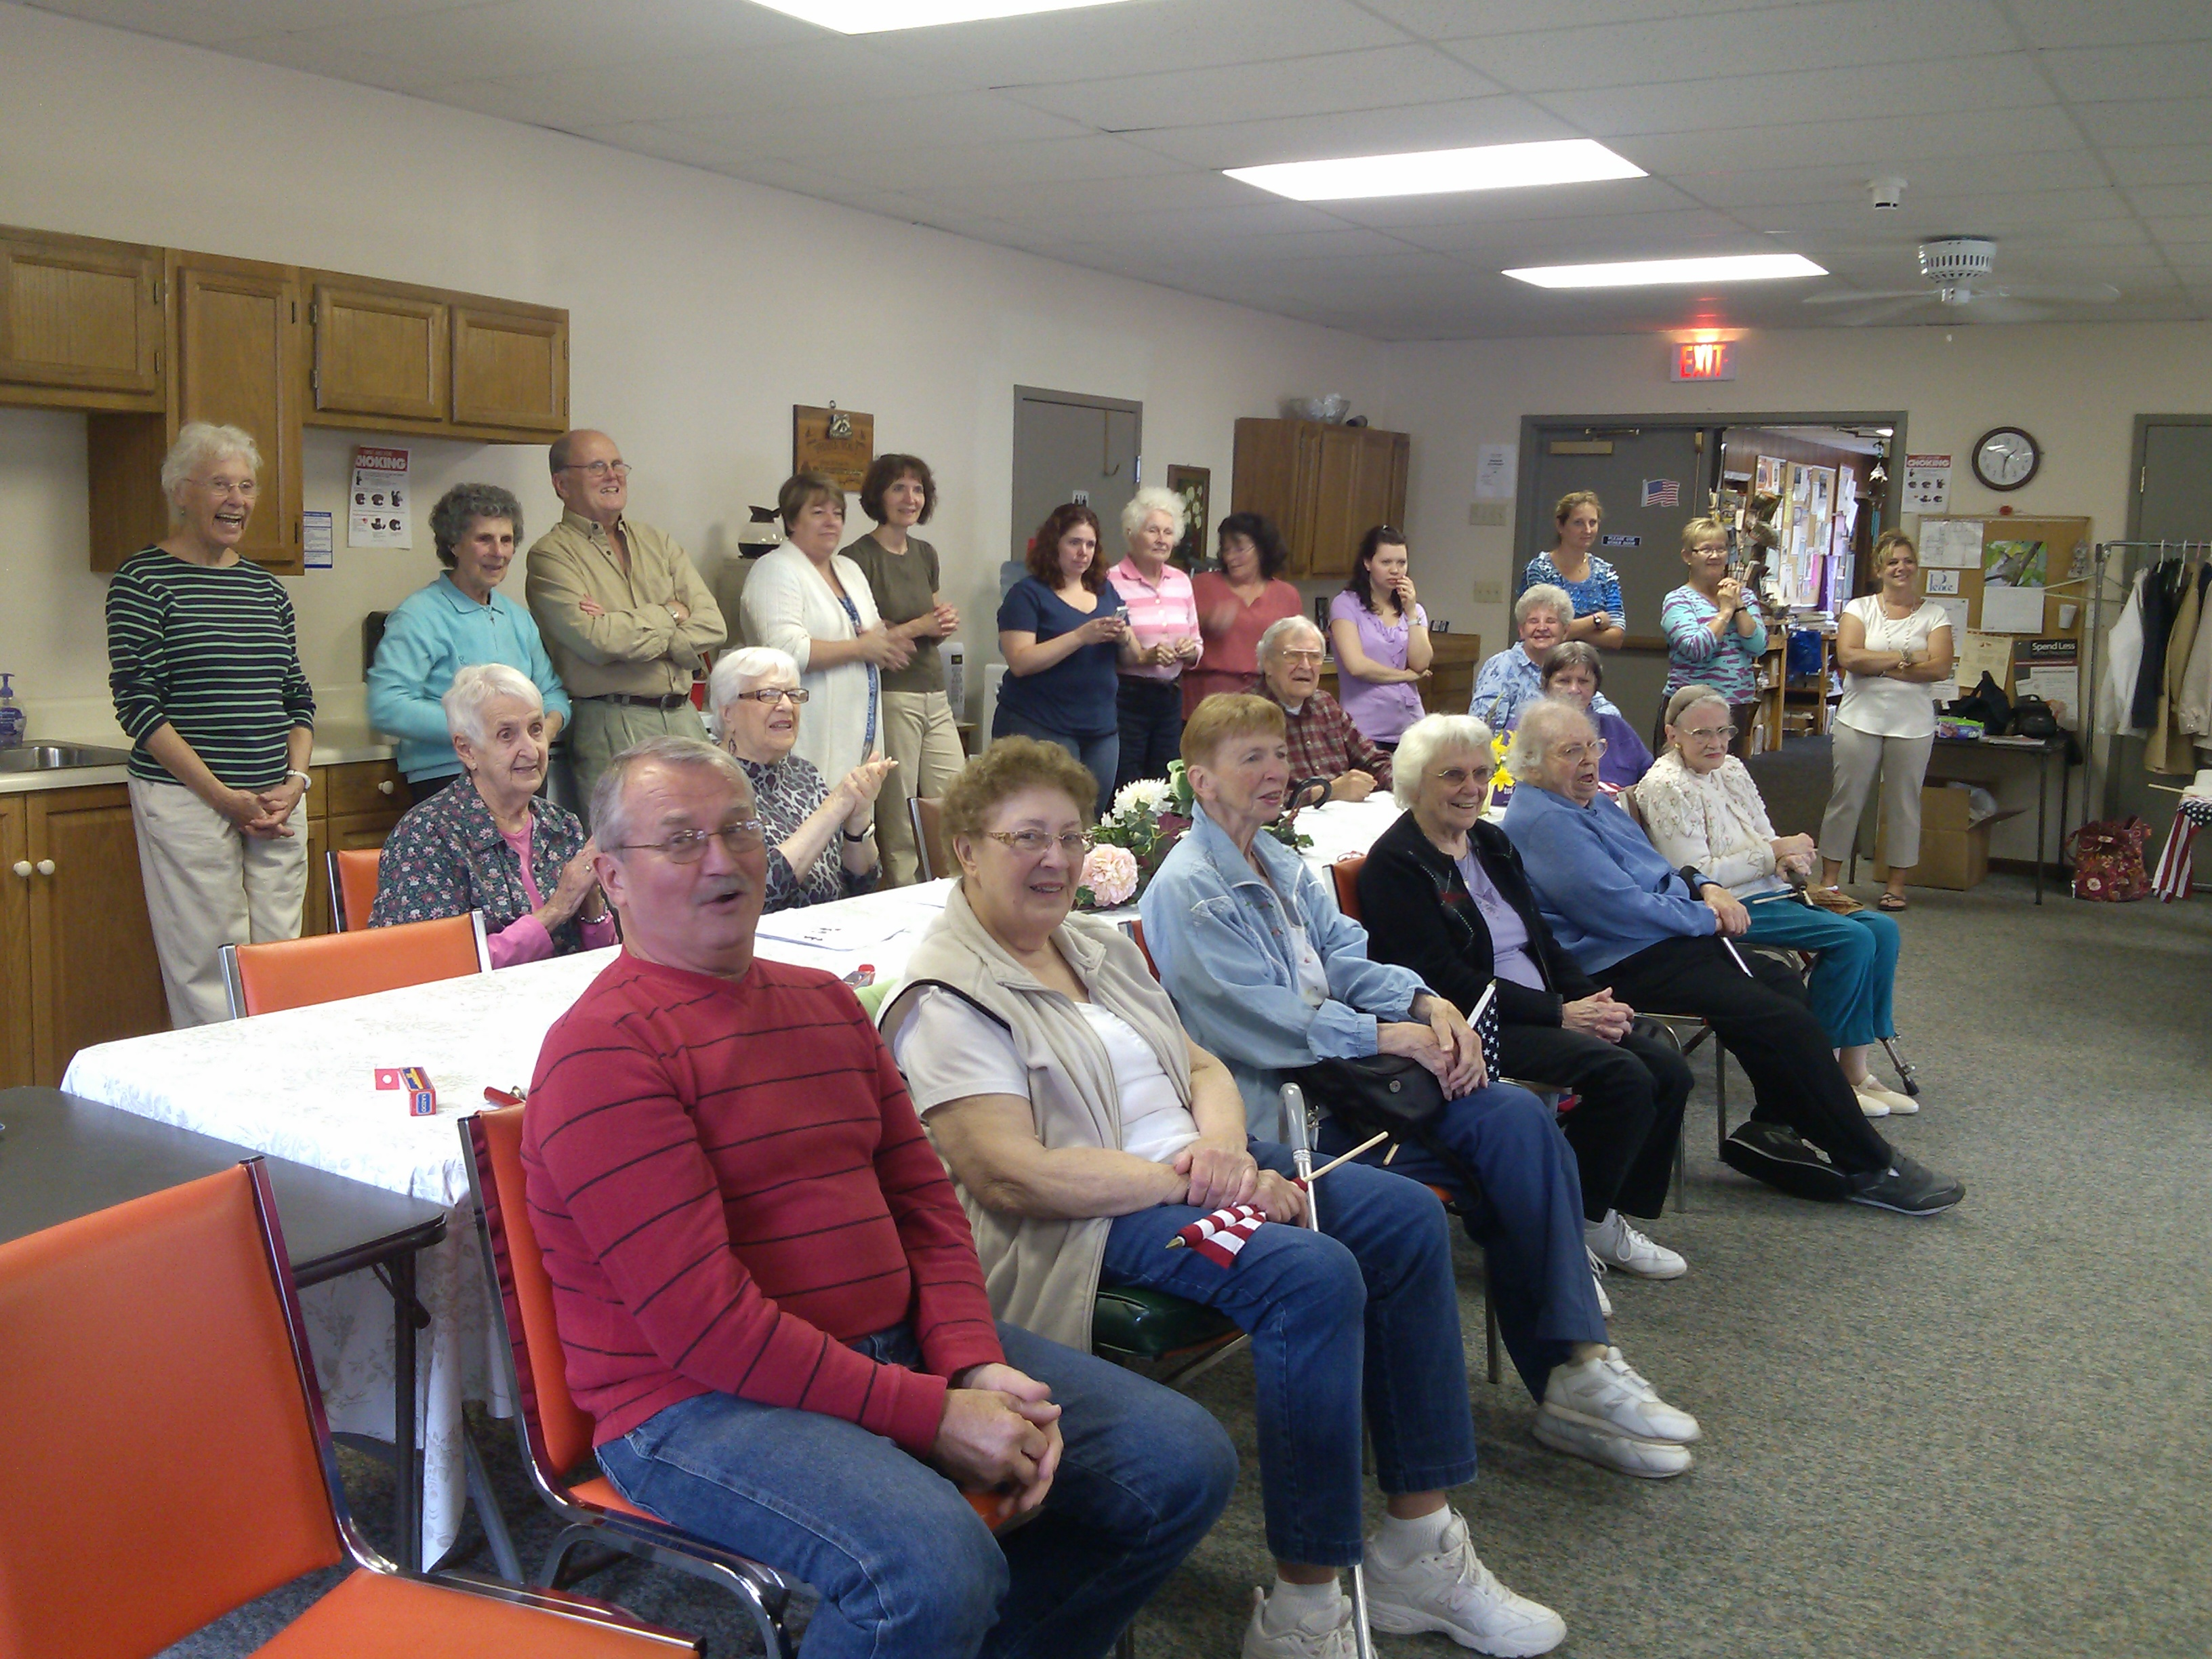 The Inlet Respite Group including the staff, Inlet Common School Teachers, and parents look on. Courtesy photo